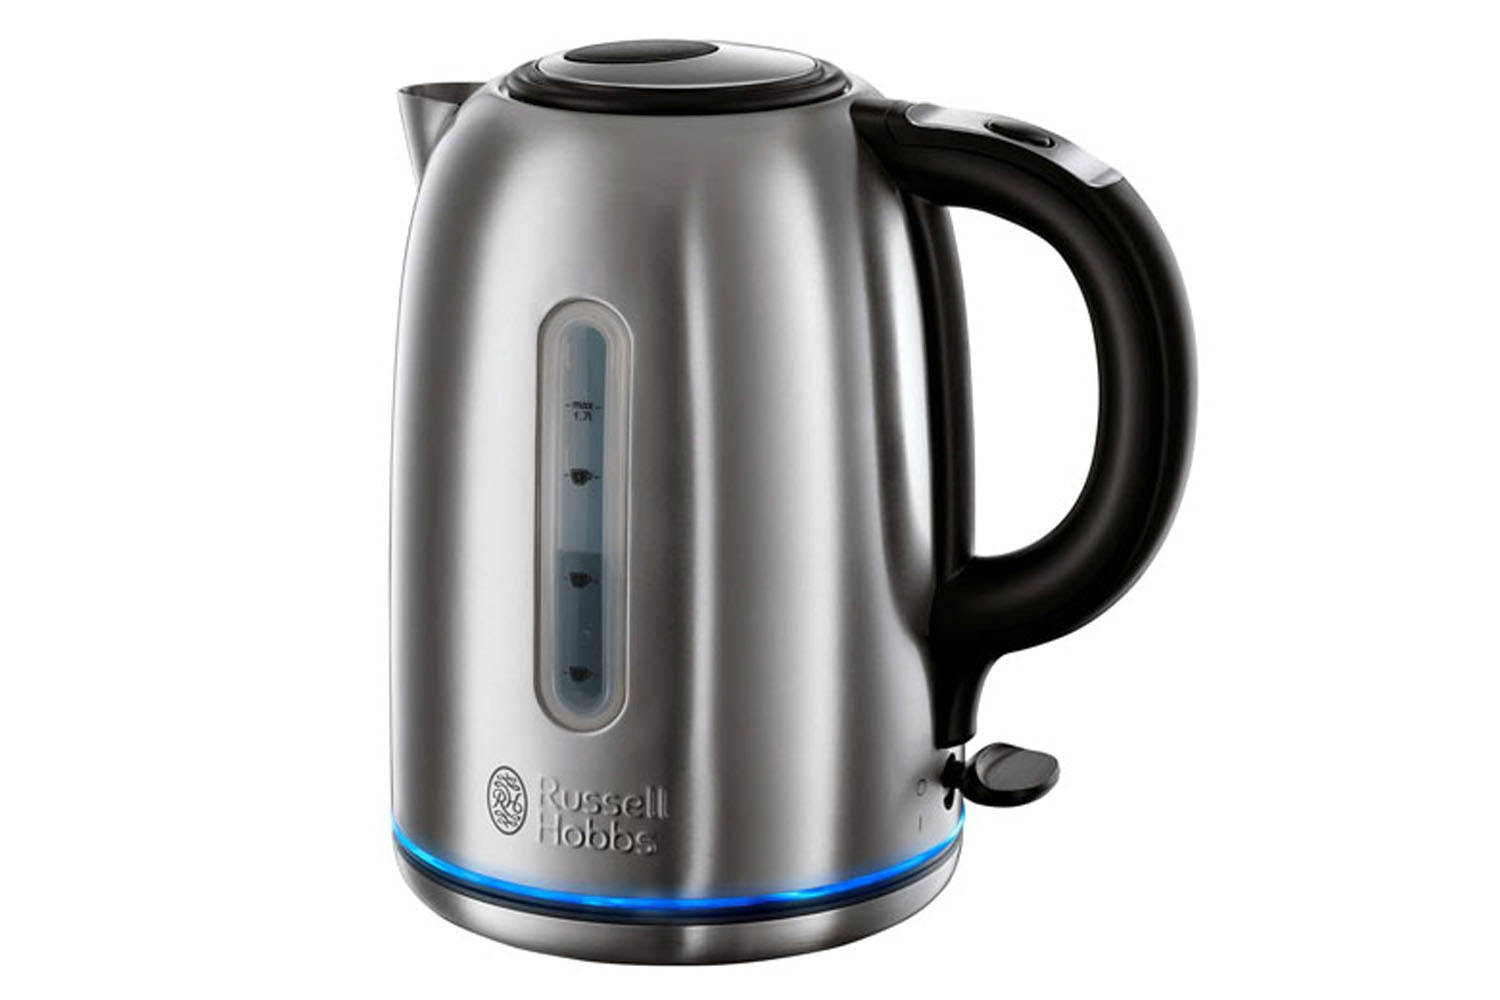 Russell Hobbs 1.7L Quiet Boil Kettle | Stainless Steel